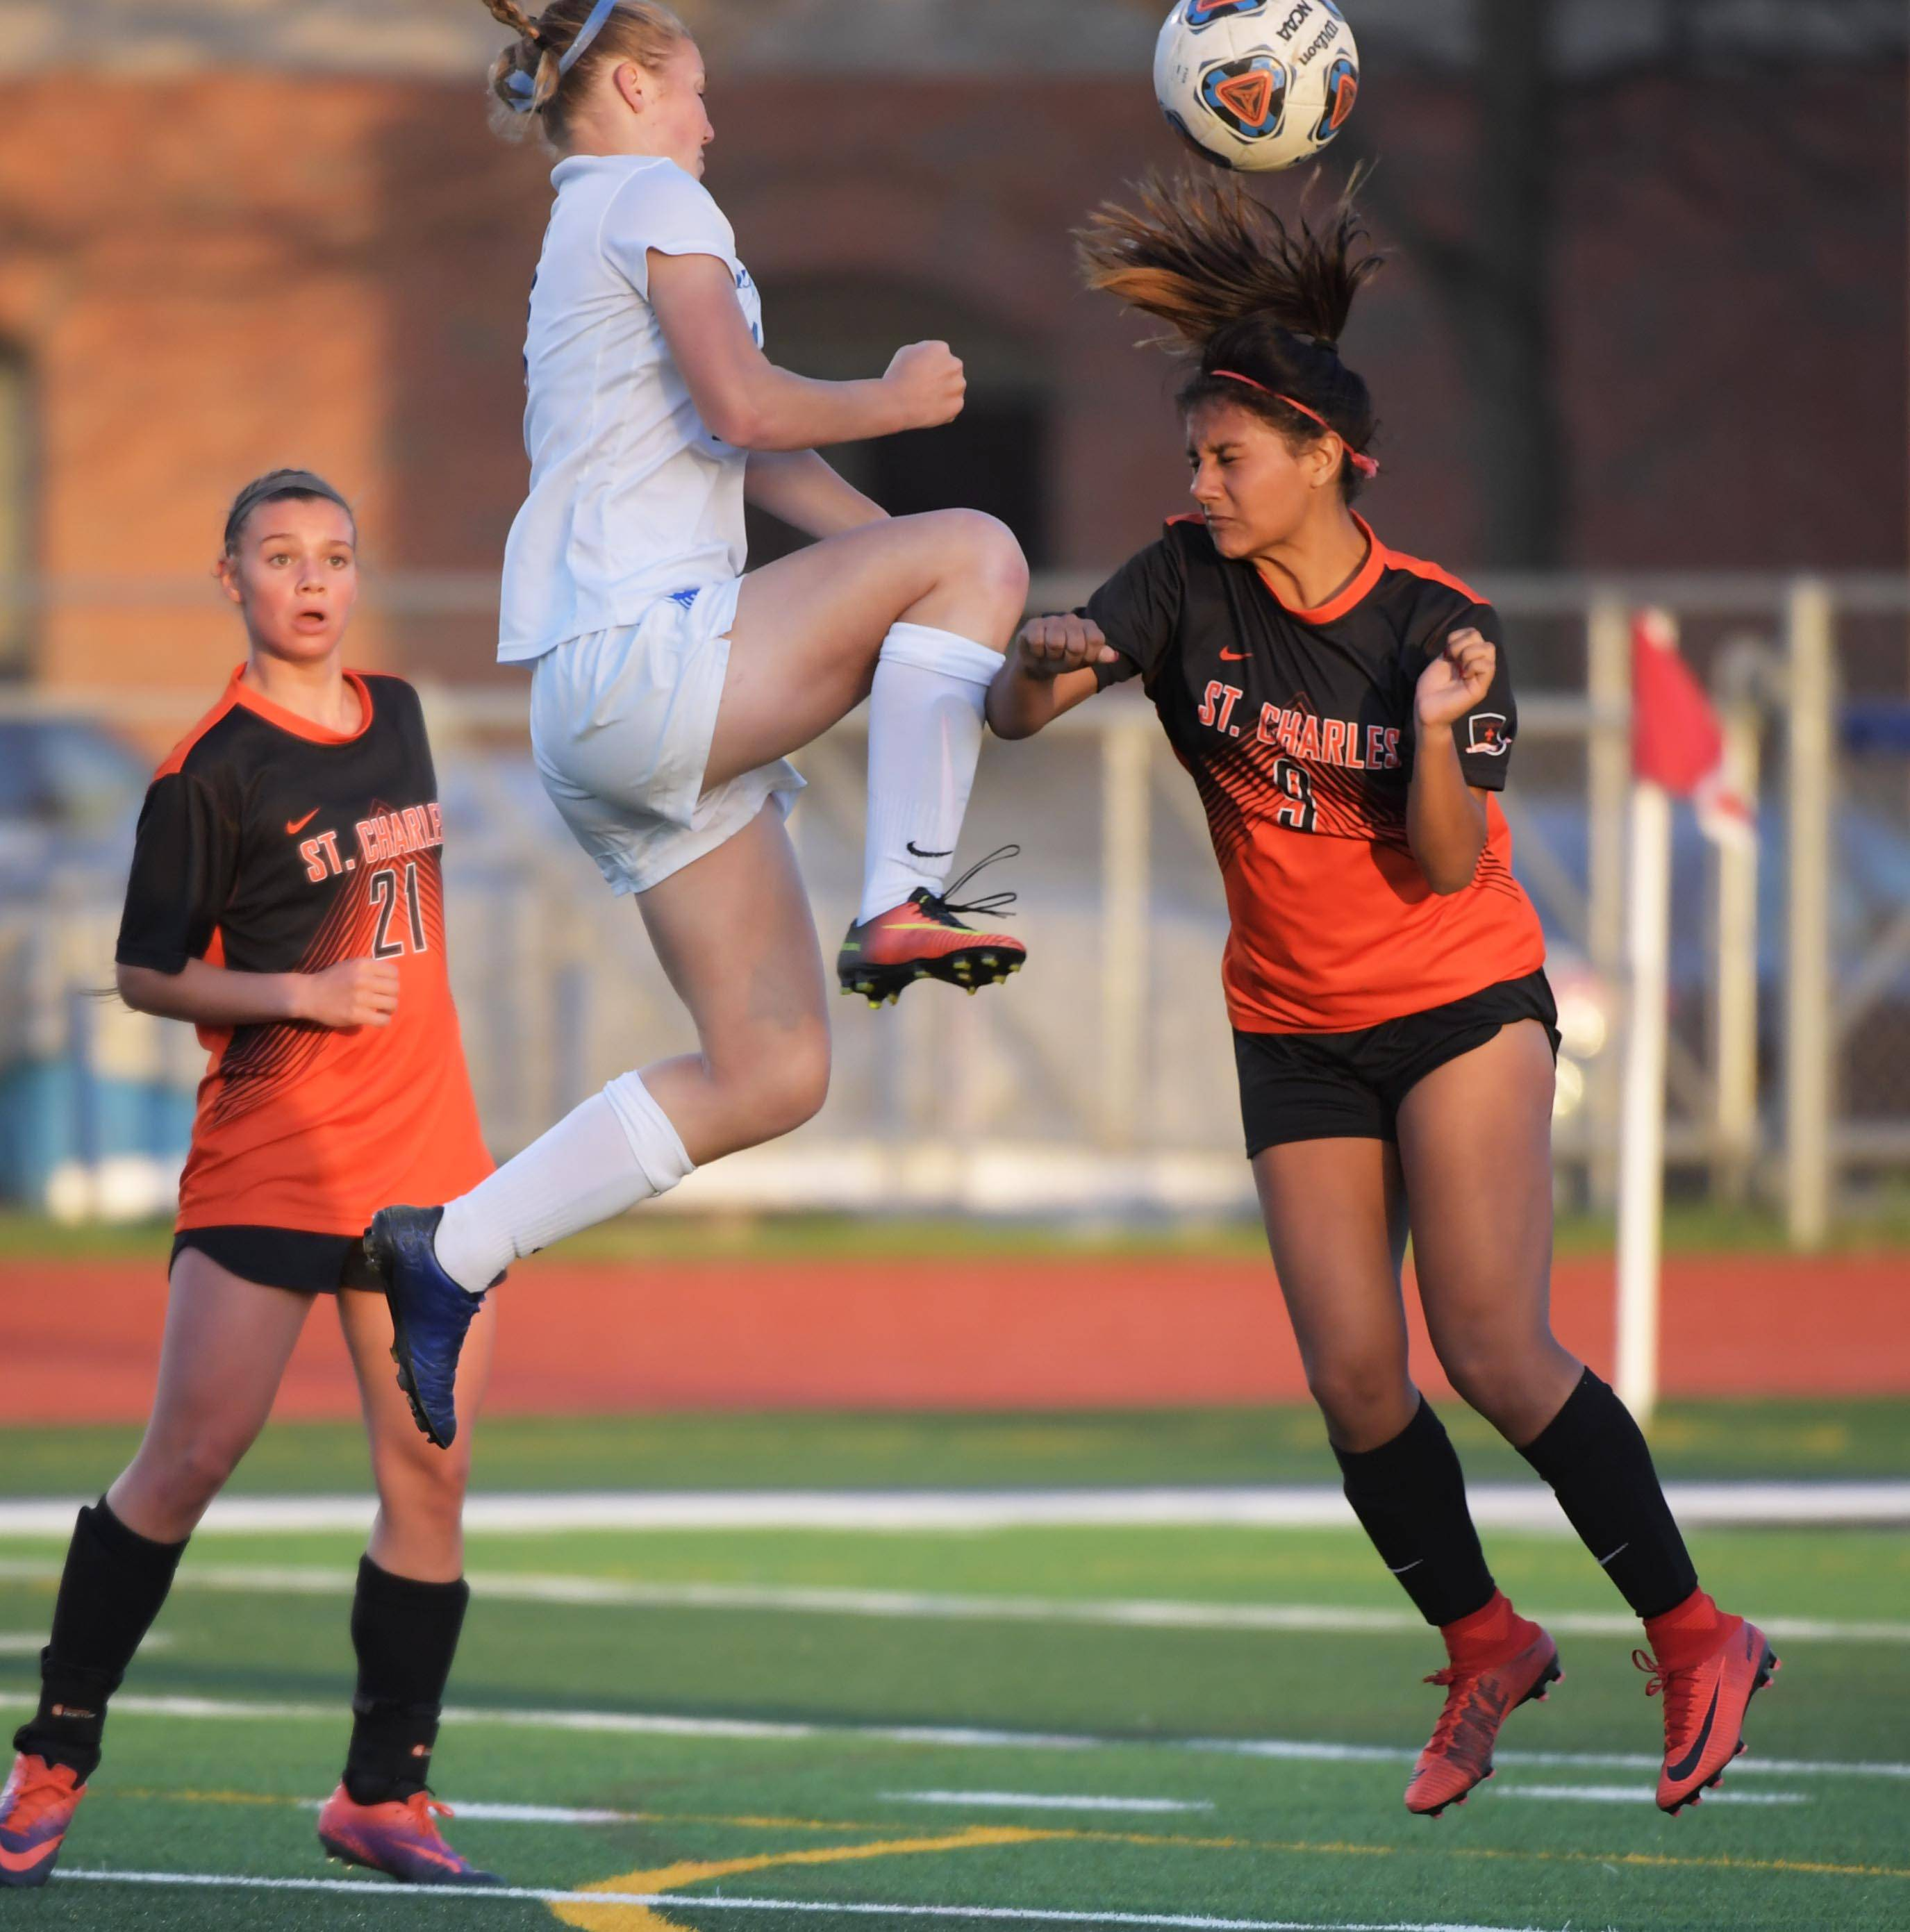 St. Charles North's Sarah Andrey and St. Charles East's Alondra Carranza collide in a girls soccer game at North High School Tuesday.